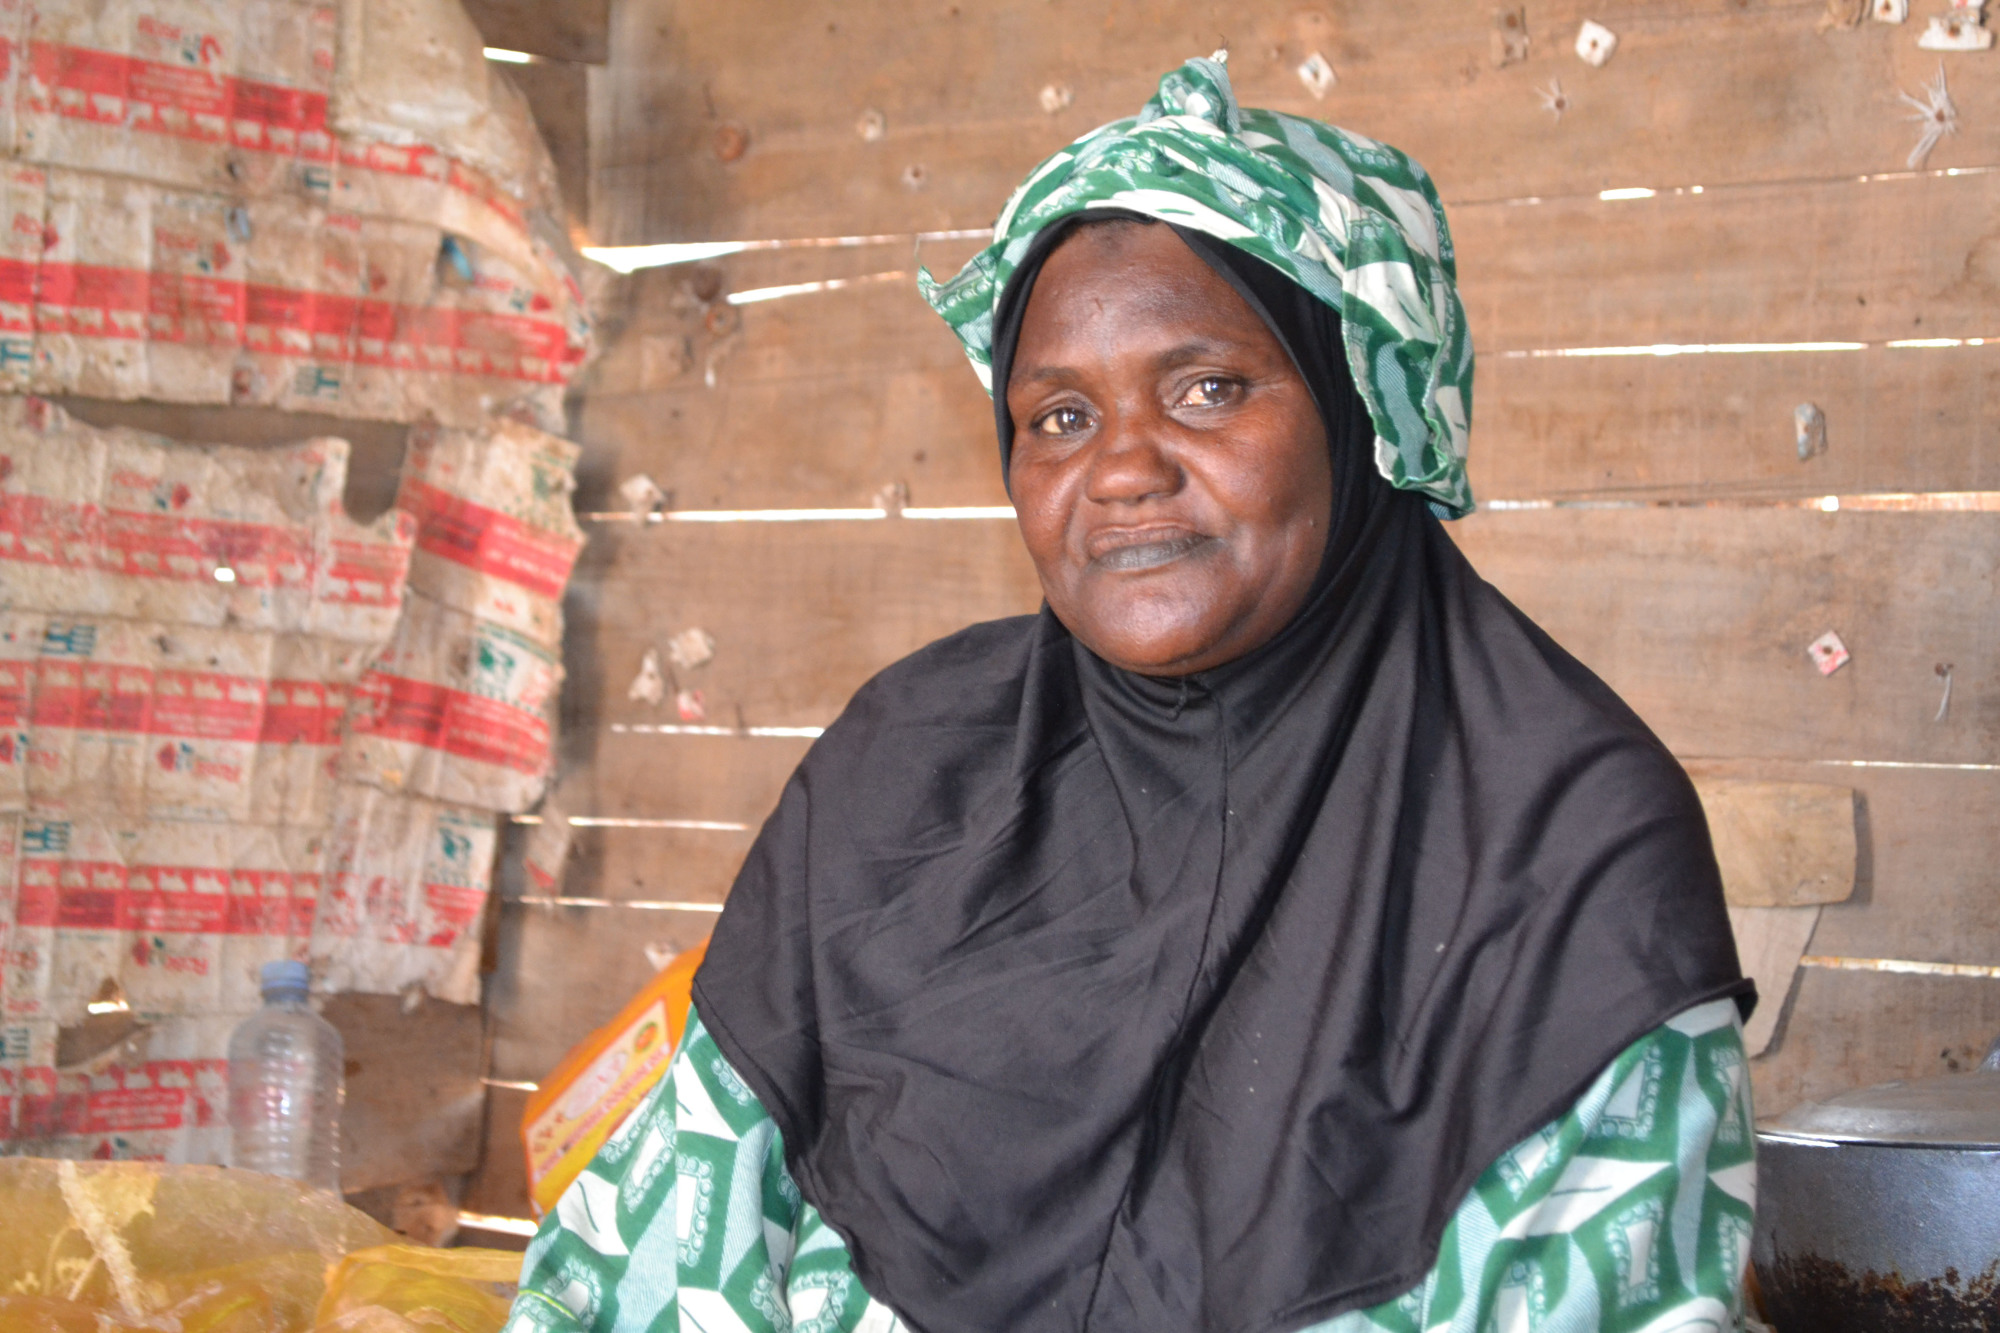 'It must be love': wife-beating a source of pride for some in Mauritania